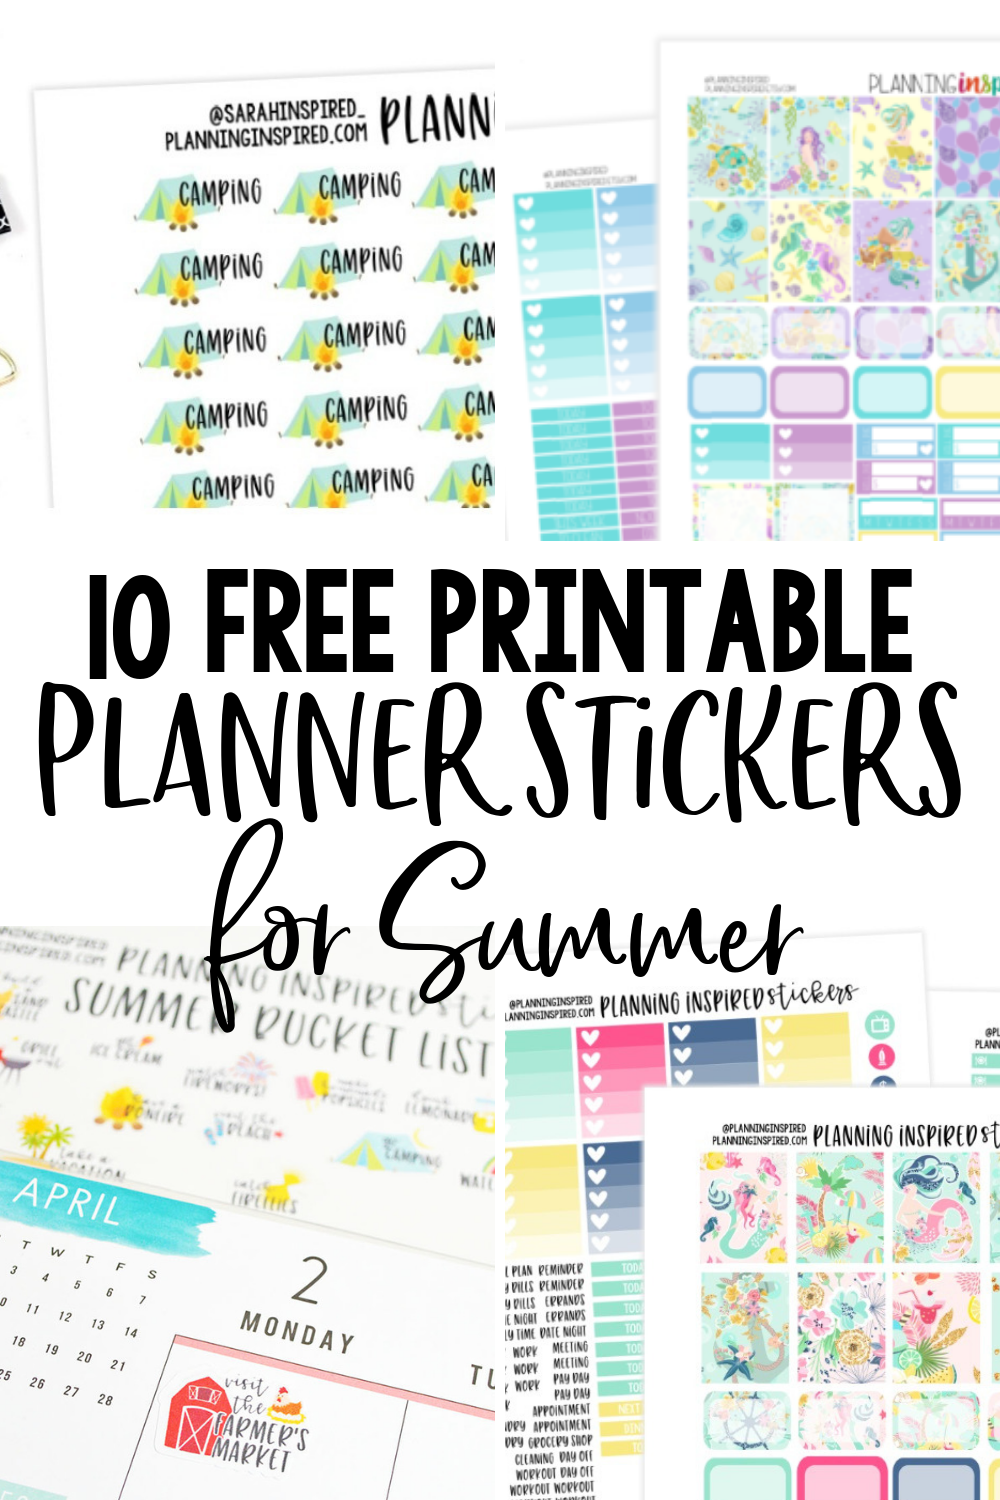 graphic regarding Free Printable Stickers known as 10 Cost-free Printable Planner Stickers for Summertime - Coming up with